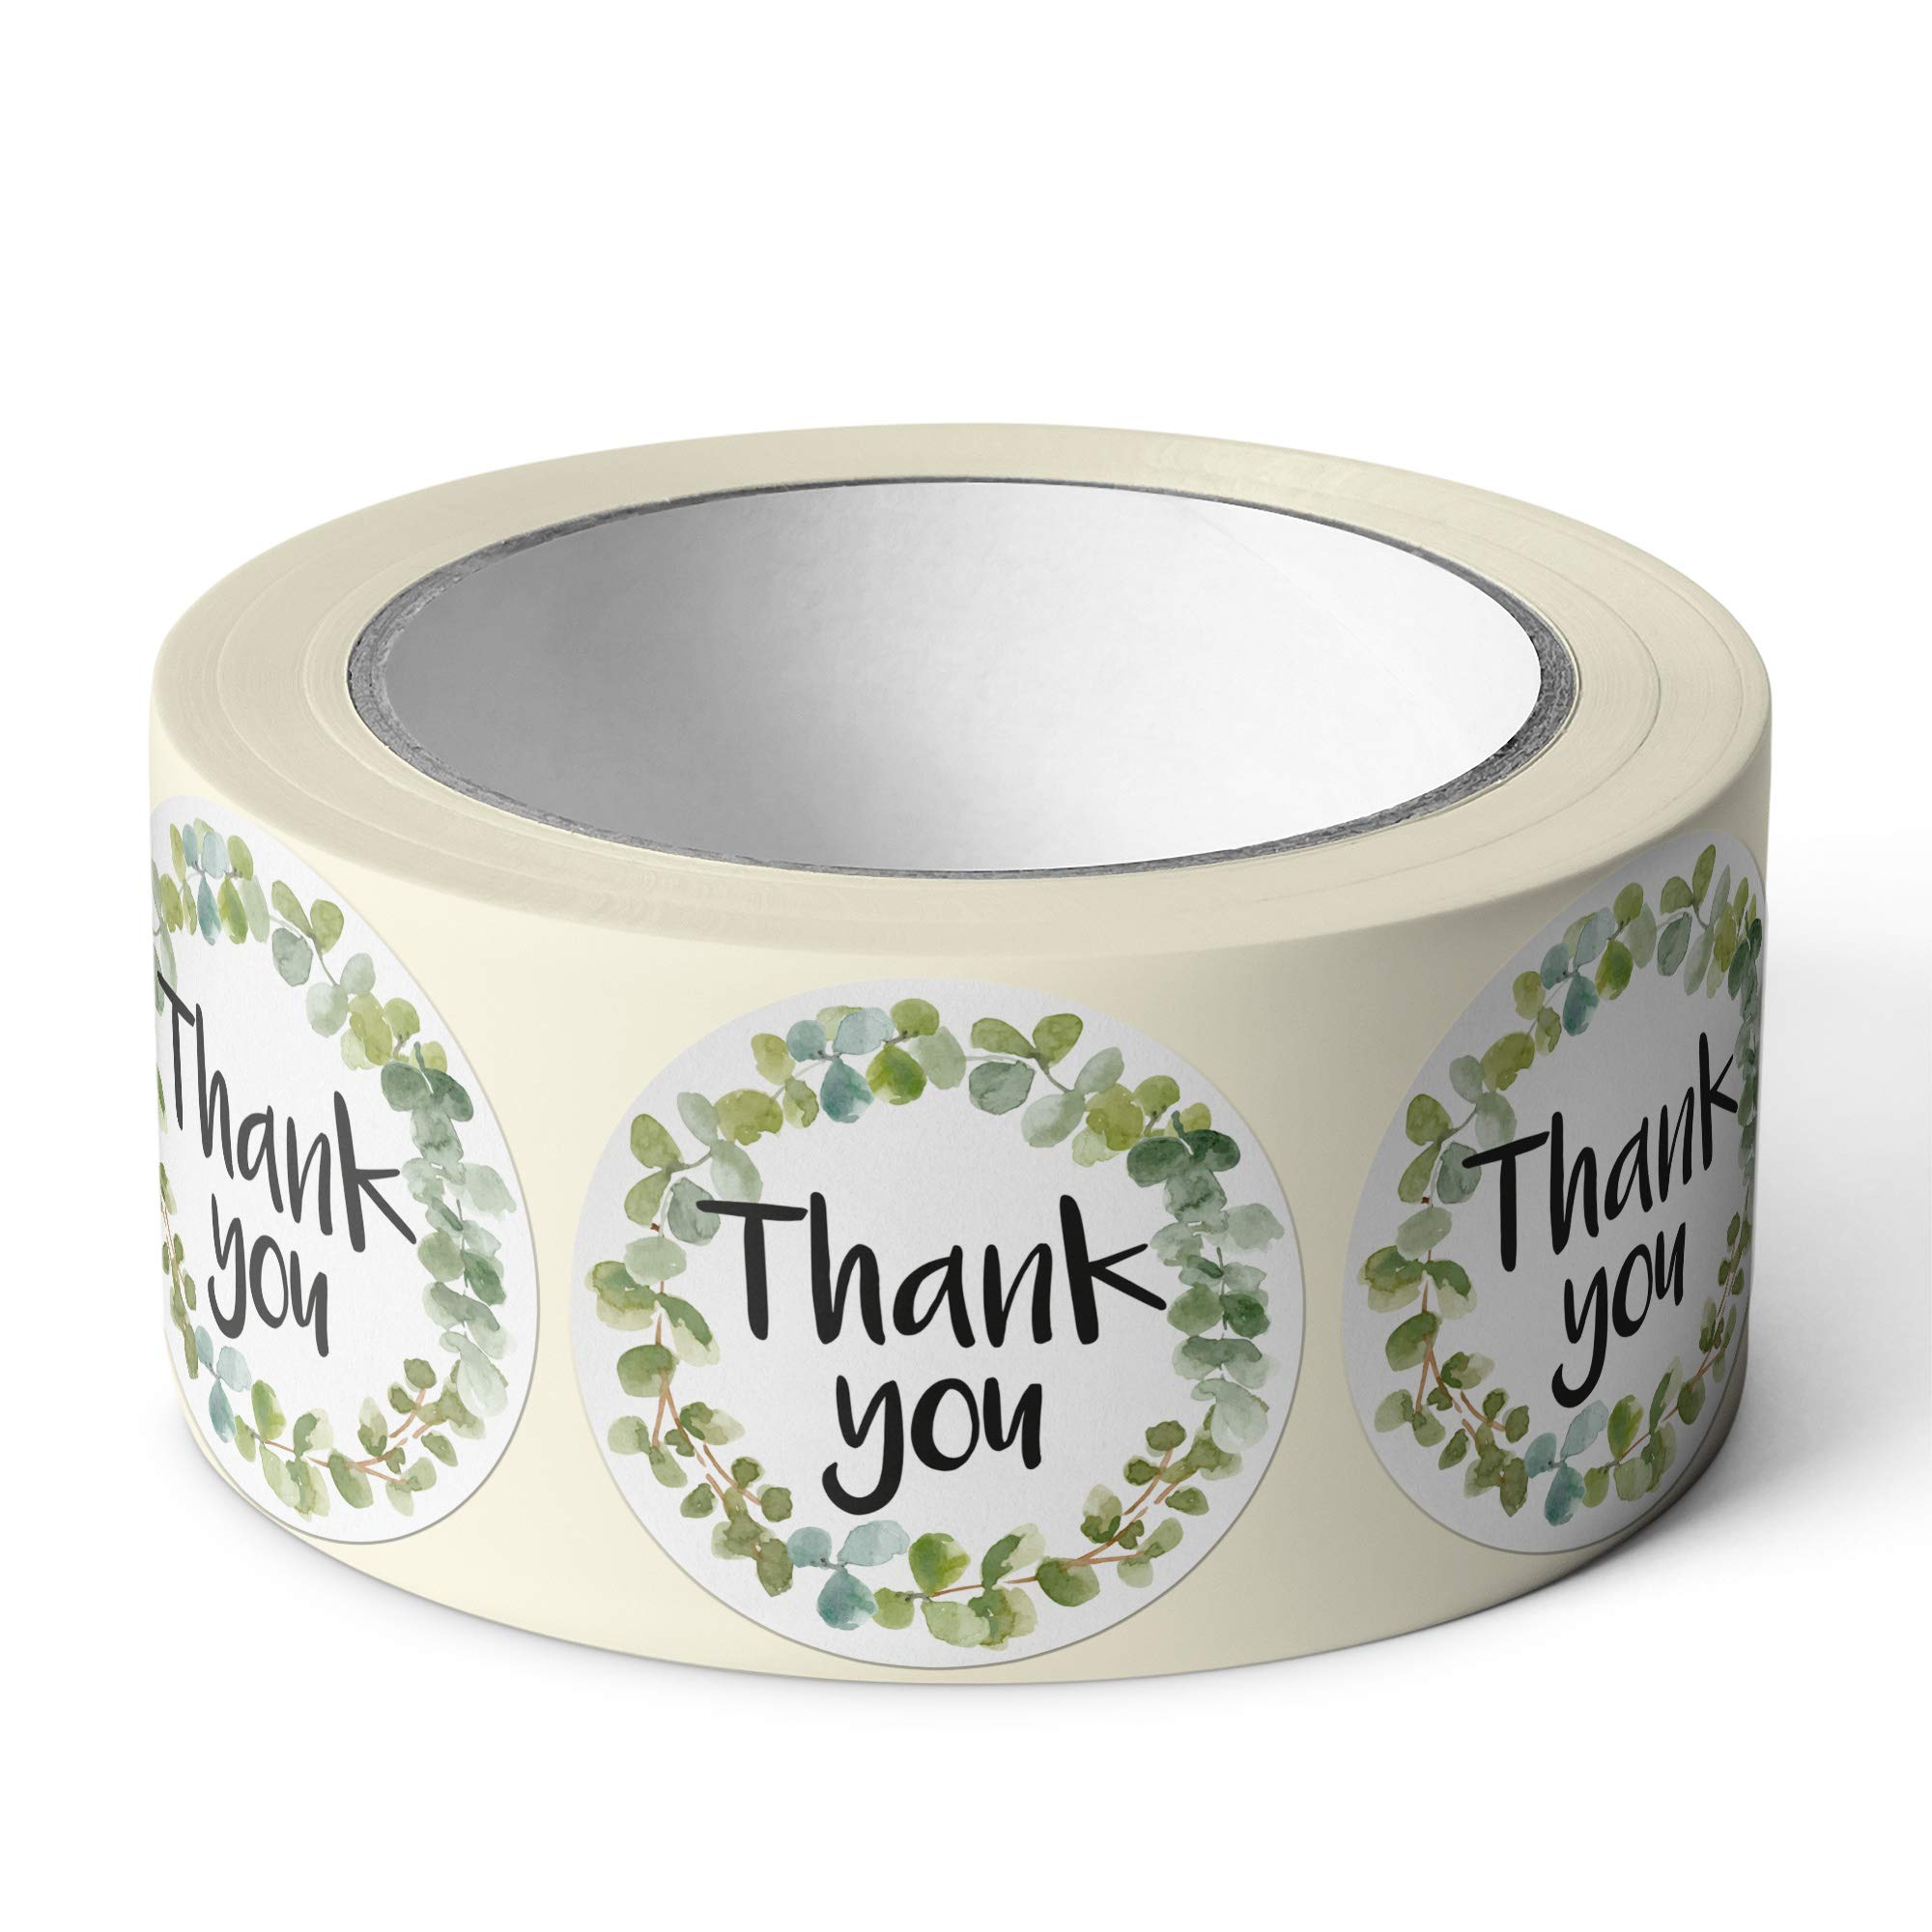 Pebble Penguin Thank You Stickers, 1.5'' (500-Count) - Floral Stickers, Great for Craft Project, Weddings, Events, Birthdays and Baby Showers - Small Business Label Tags for Packages & Merchandise by Pebble Penguin